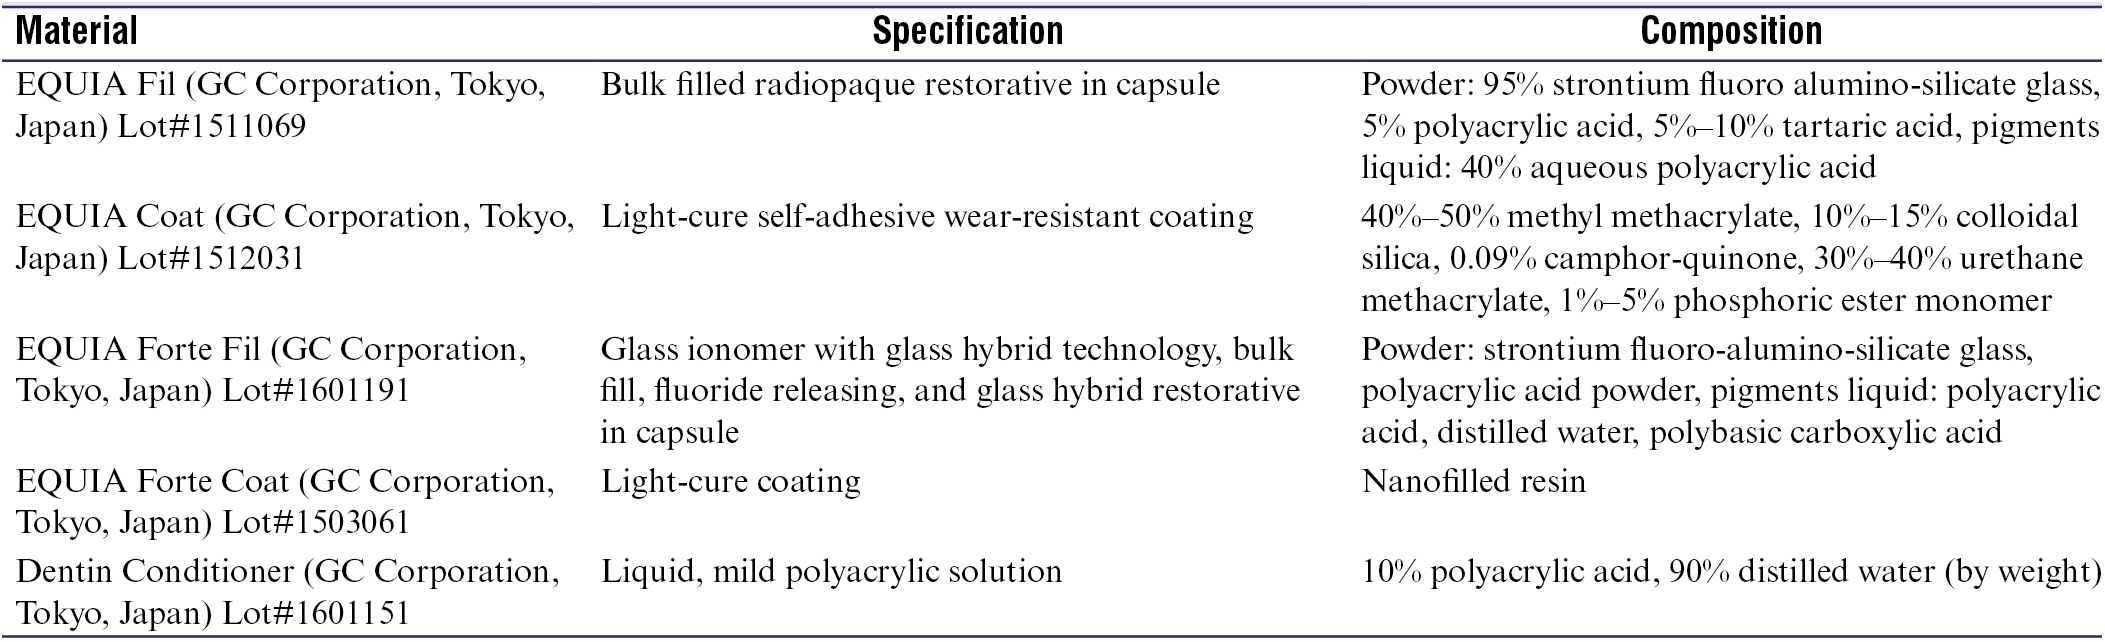 Table 1: Material's specification, composition, manufacturer, and lot number